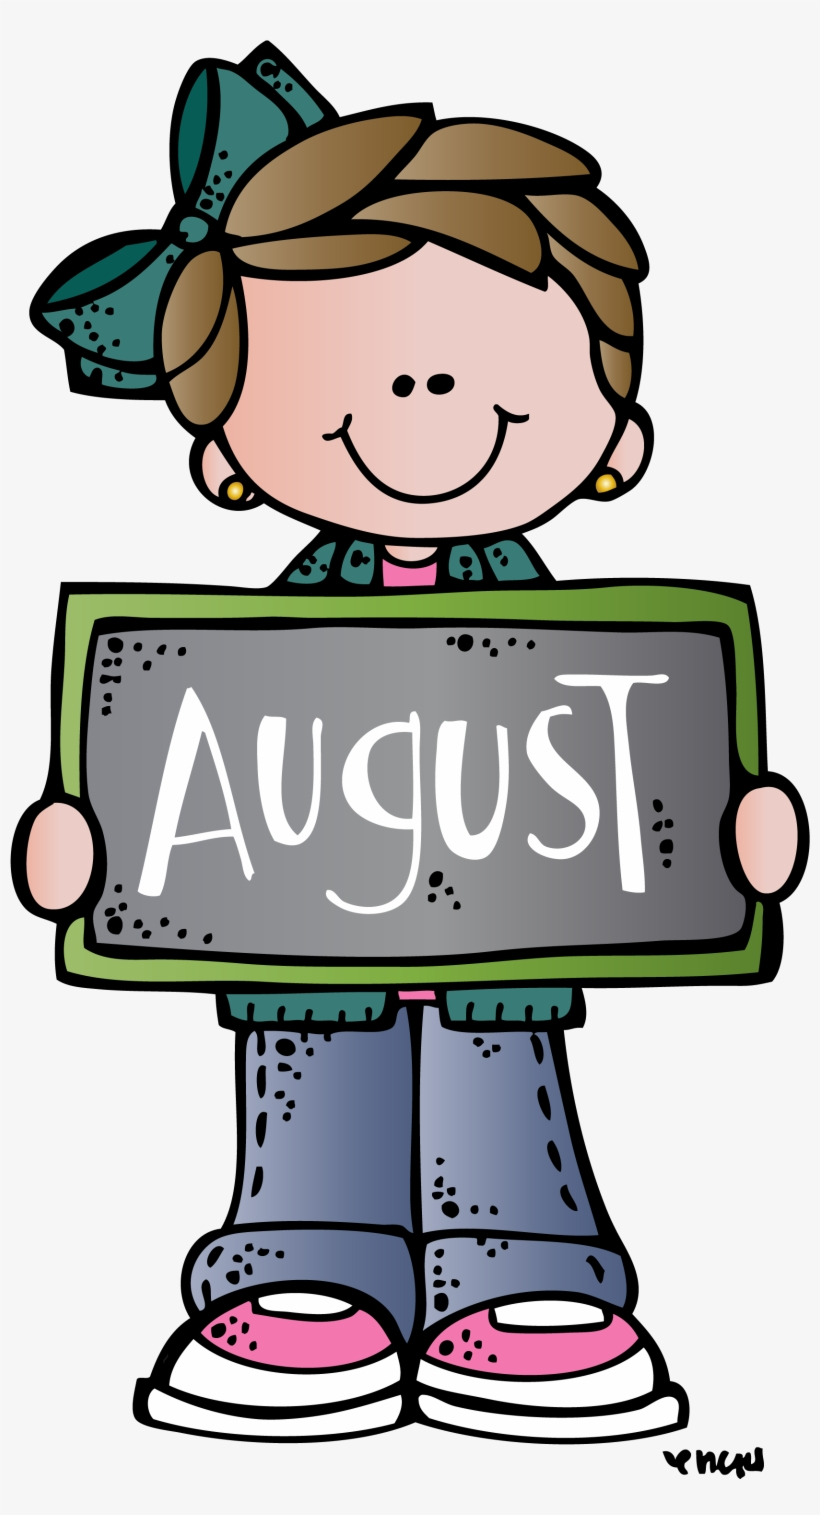 August clipart free transparent jpg freeuse library 2018 Calendar Transparent Png - August Clipart Transparent PNG ... jpg freeuse library